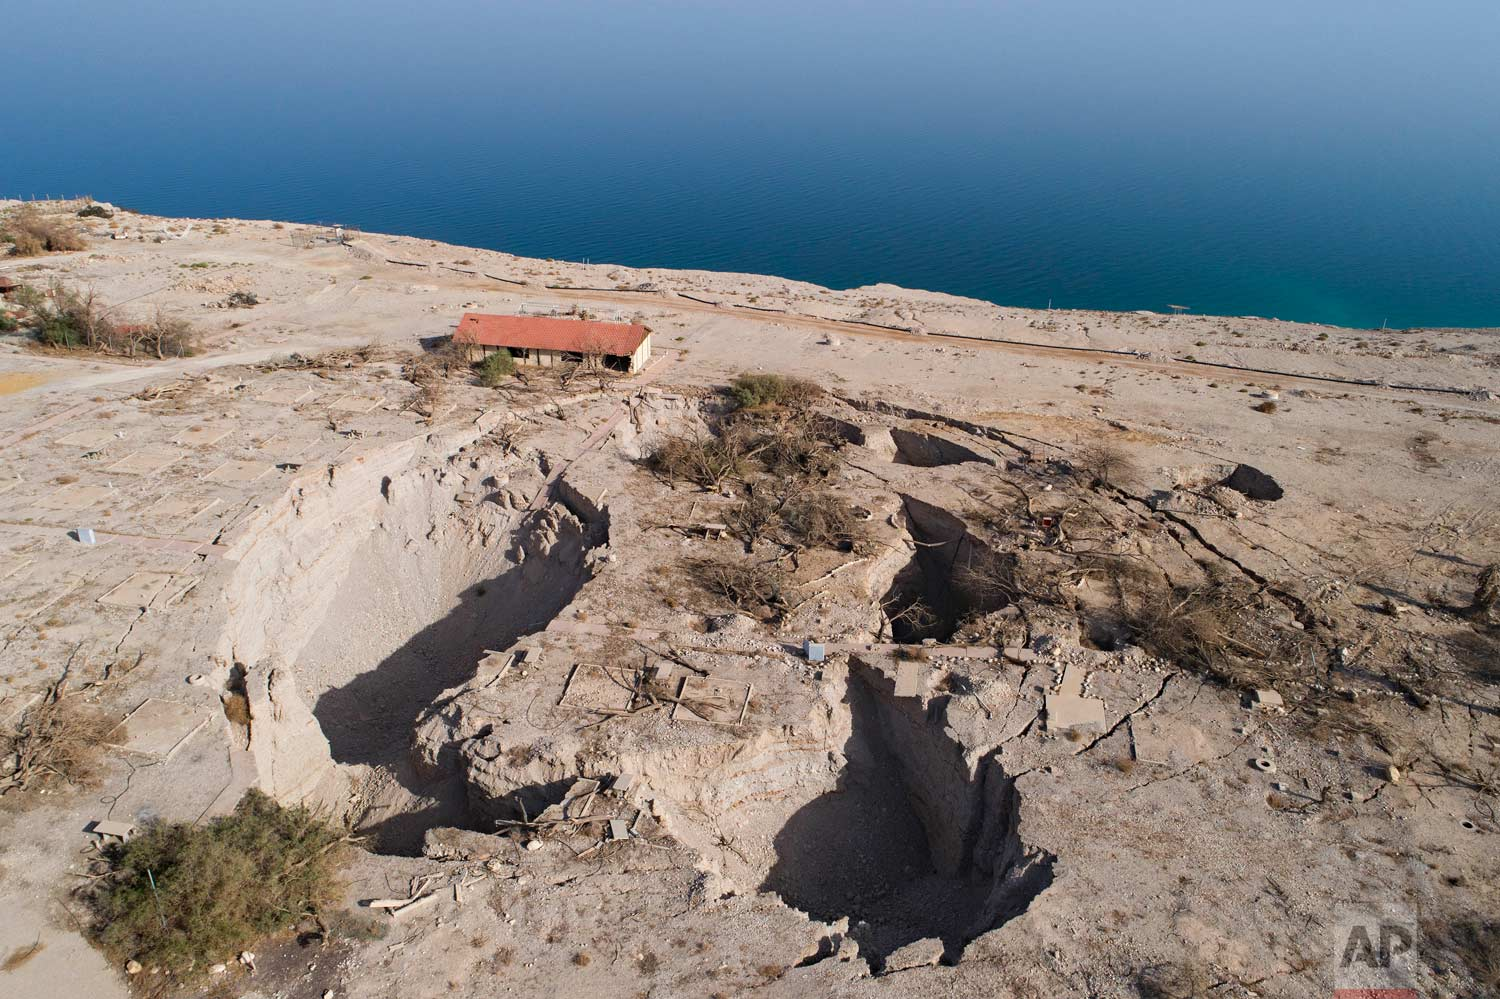 In this Nov. 28, 2017 photo, an aerial view shows sinkholes in the abandoned tourist resort of Ein Gedi on the Dead Sea shore. (AP Photo/Oded Balilty)